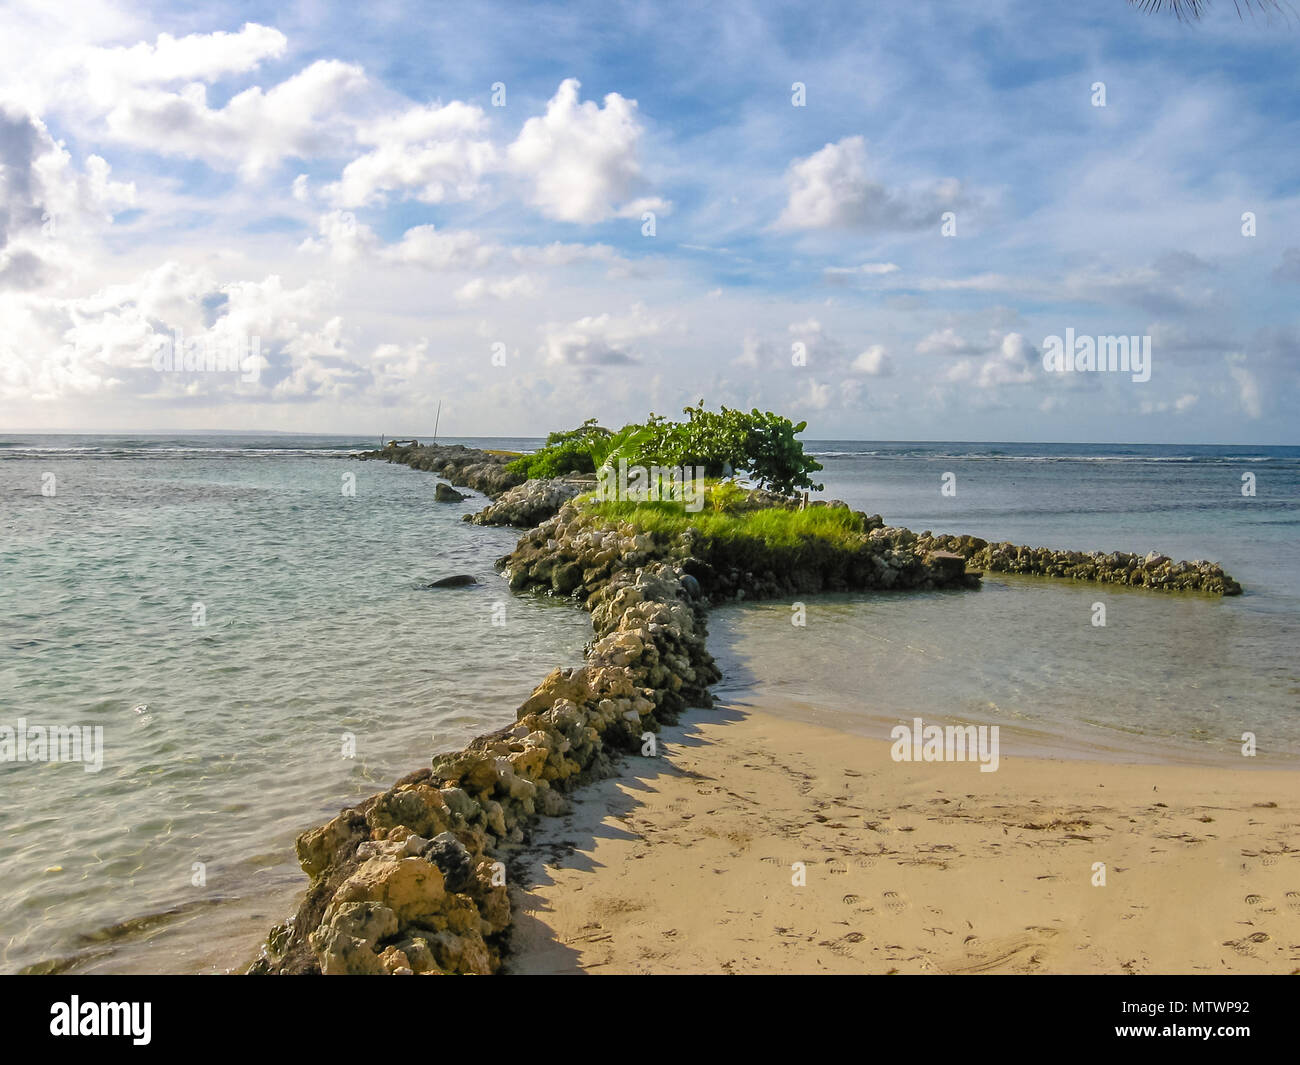 The famous beach of Sainte Anne divided into two bays with calm and transparent sea. Guadeloupe, French Caribbean, Antilles. - Stock Image